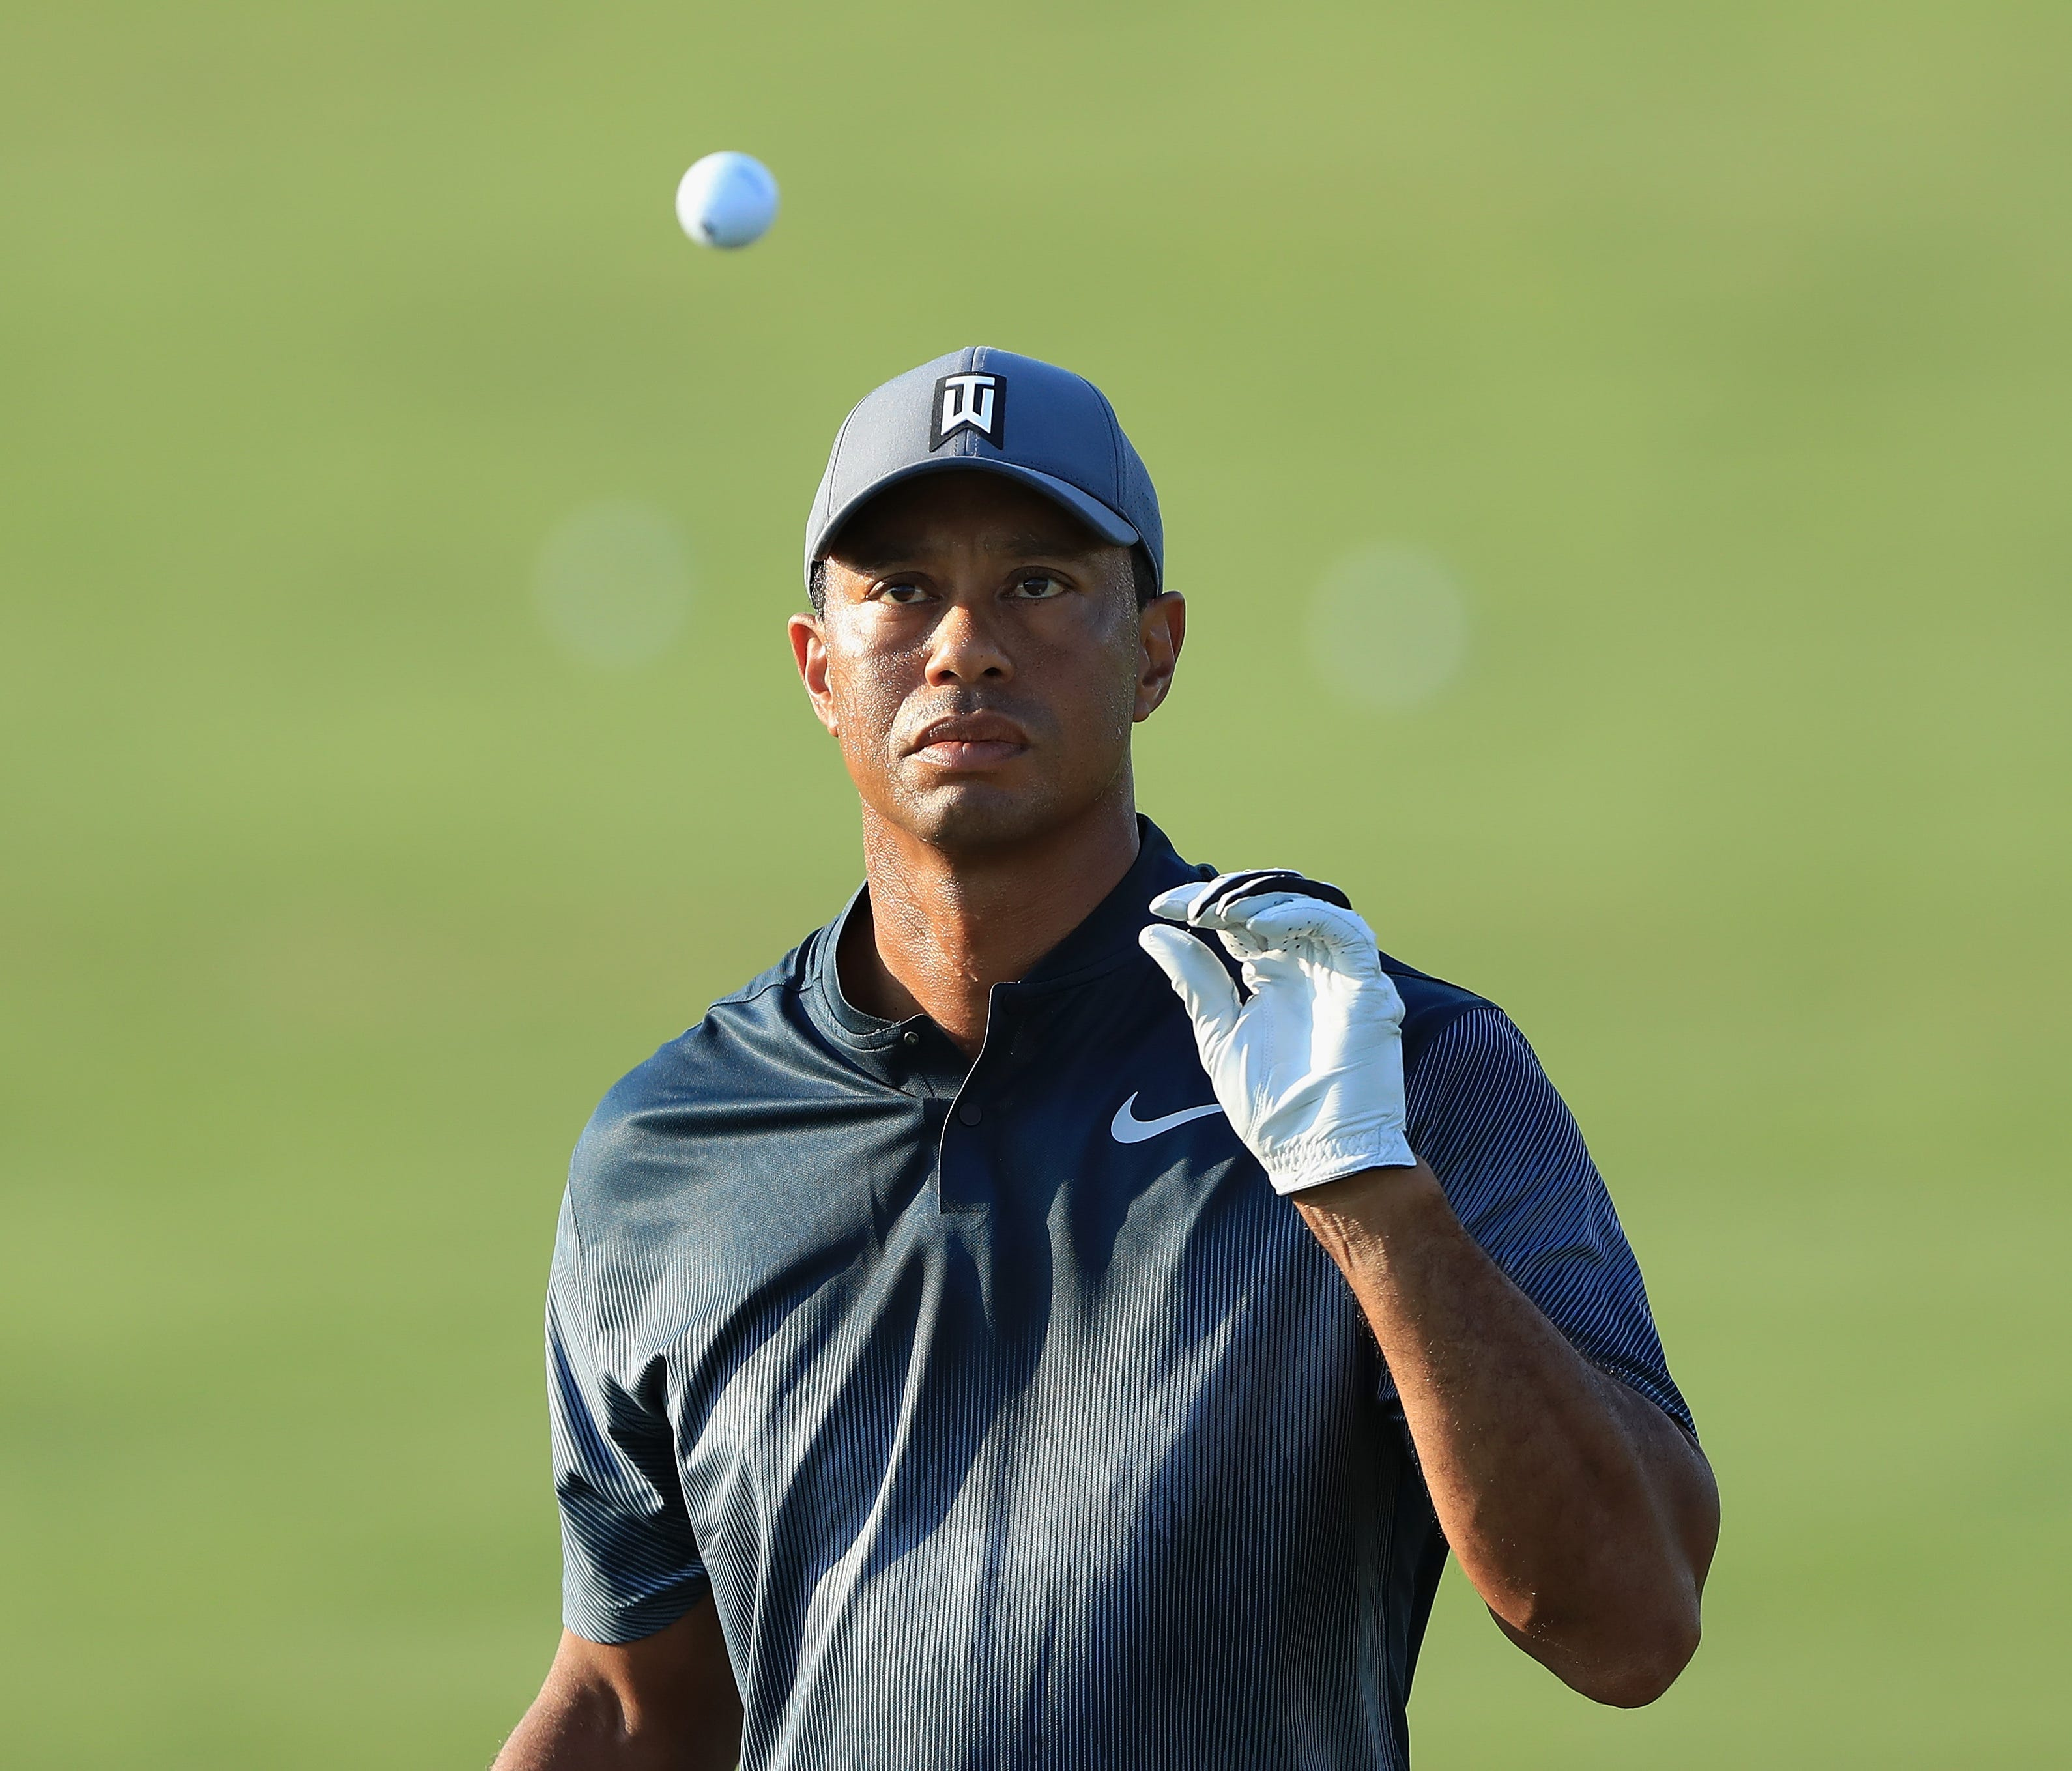 Tiger Woods catches a ball as he warms up on the range prior to playing in the second round of The Players Championship on the Stadium Course at TPC Sawgrass.